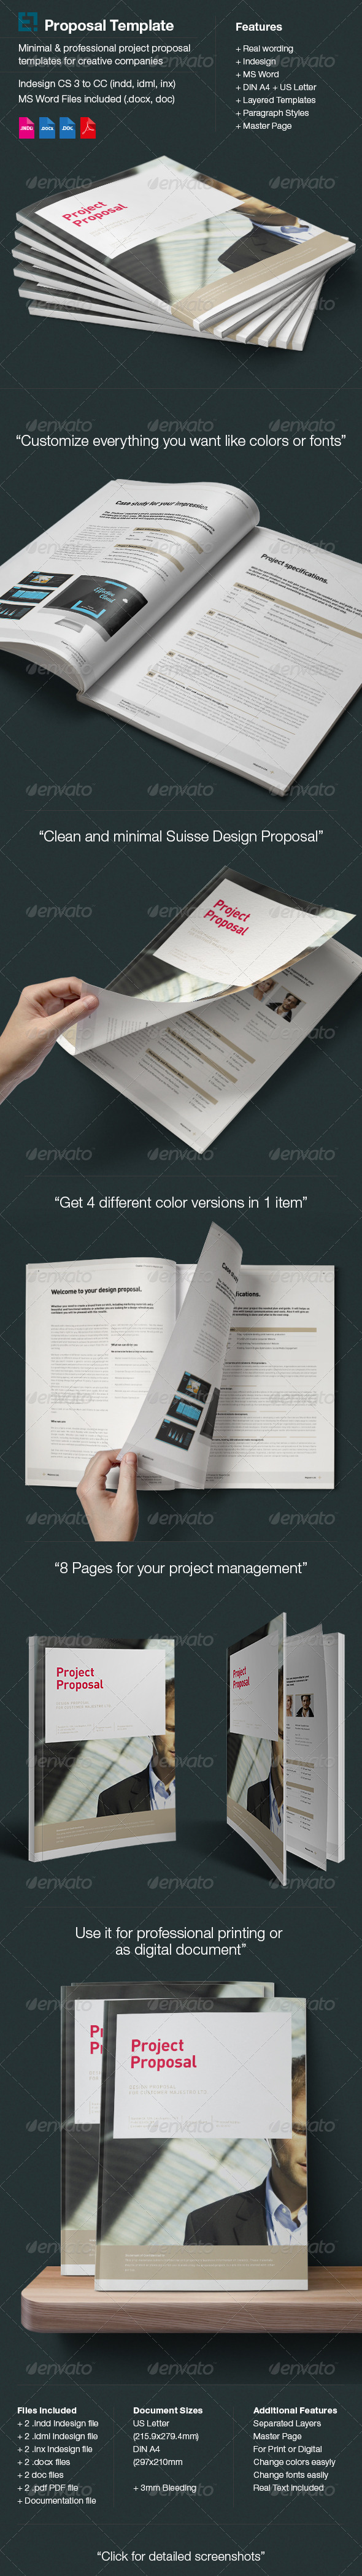 GraphicRiver Proposal Template 6166556